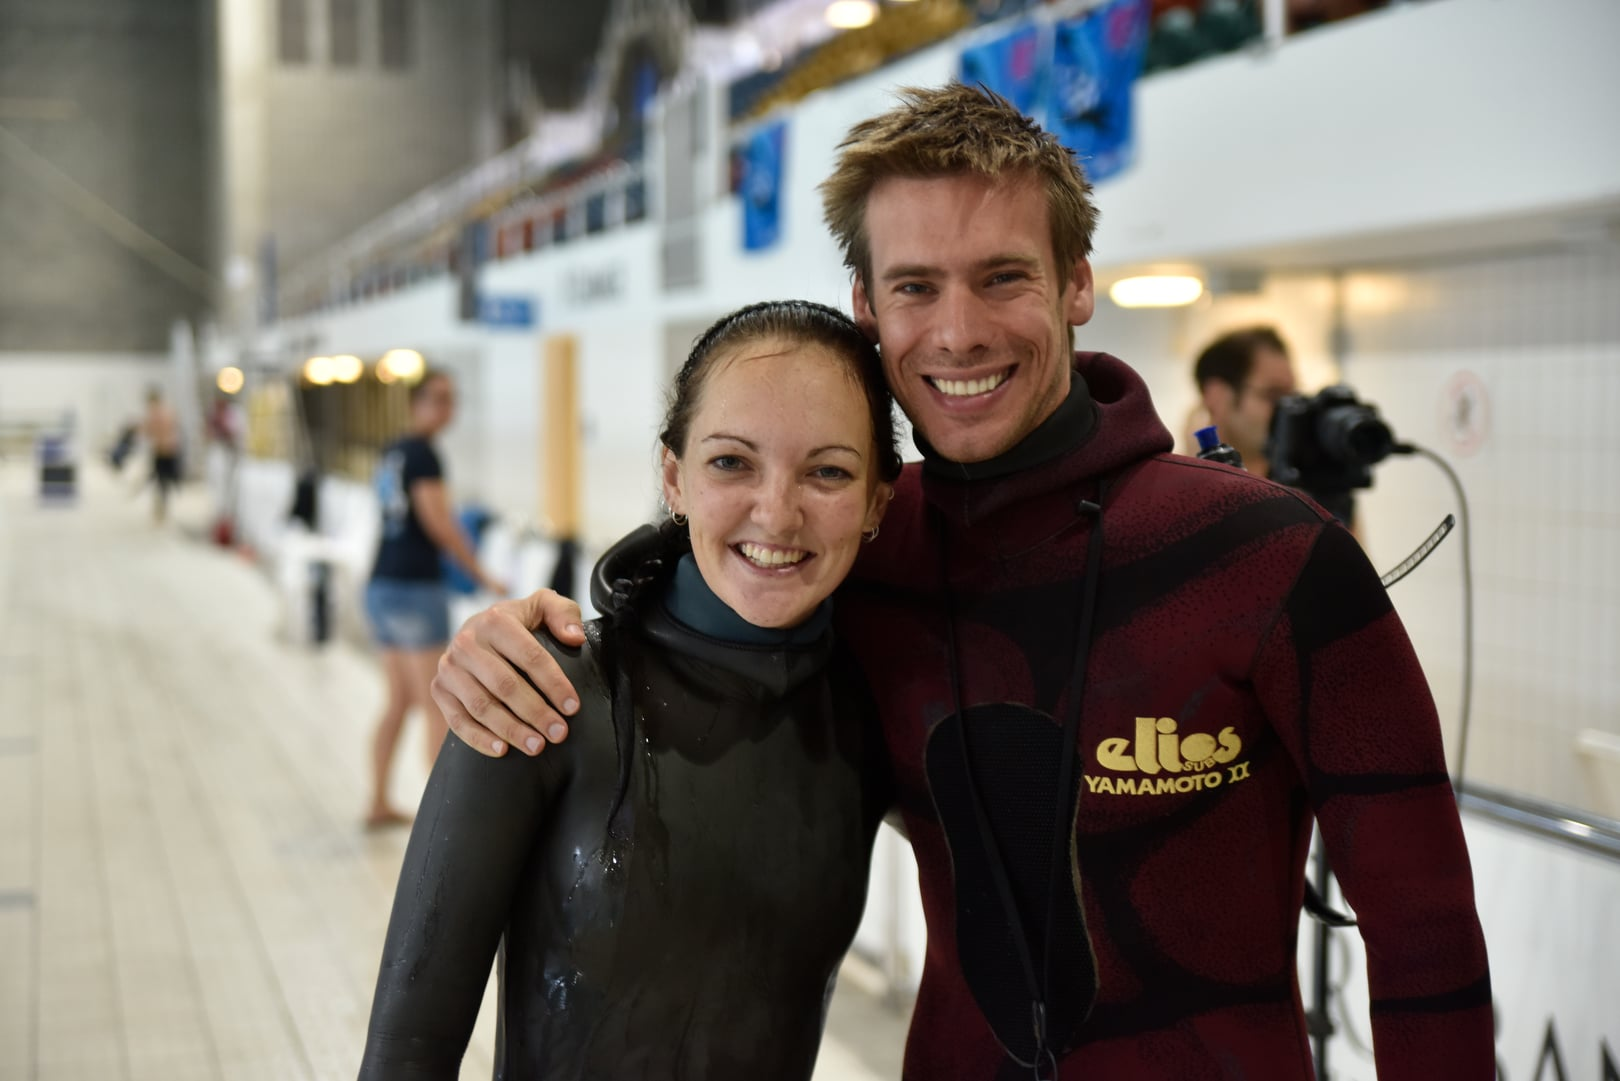 Amber Bourke From Australia and Chris Marshall Of New Zealand